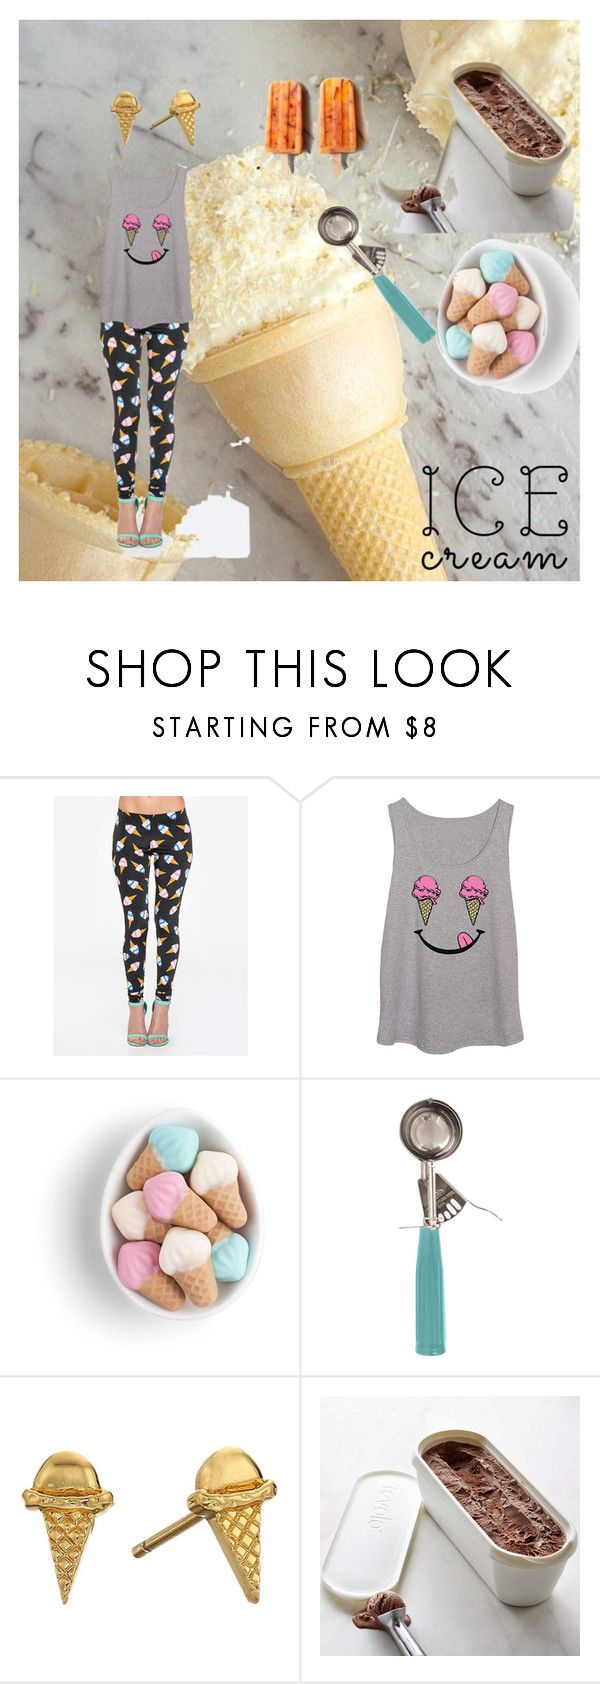 """""""Less talk, more icecream"""" by emmytwo ❤ liked on Polyvore featuring interior, interiors, interior design, home, home decor, interior decorating, ZooShoo, Parlor, Gorjana and Williams-Sonoma"""